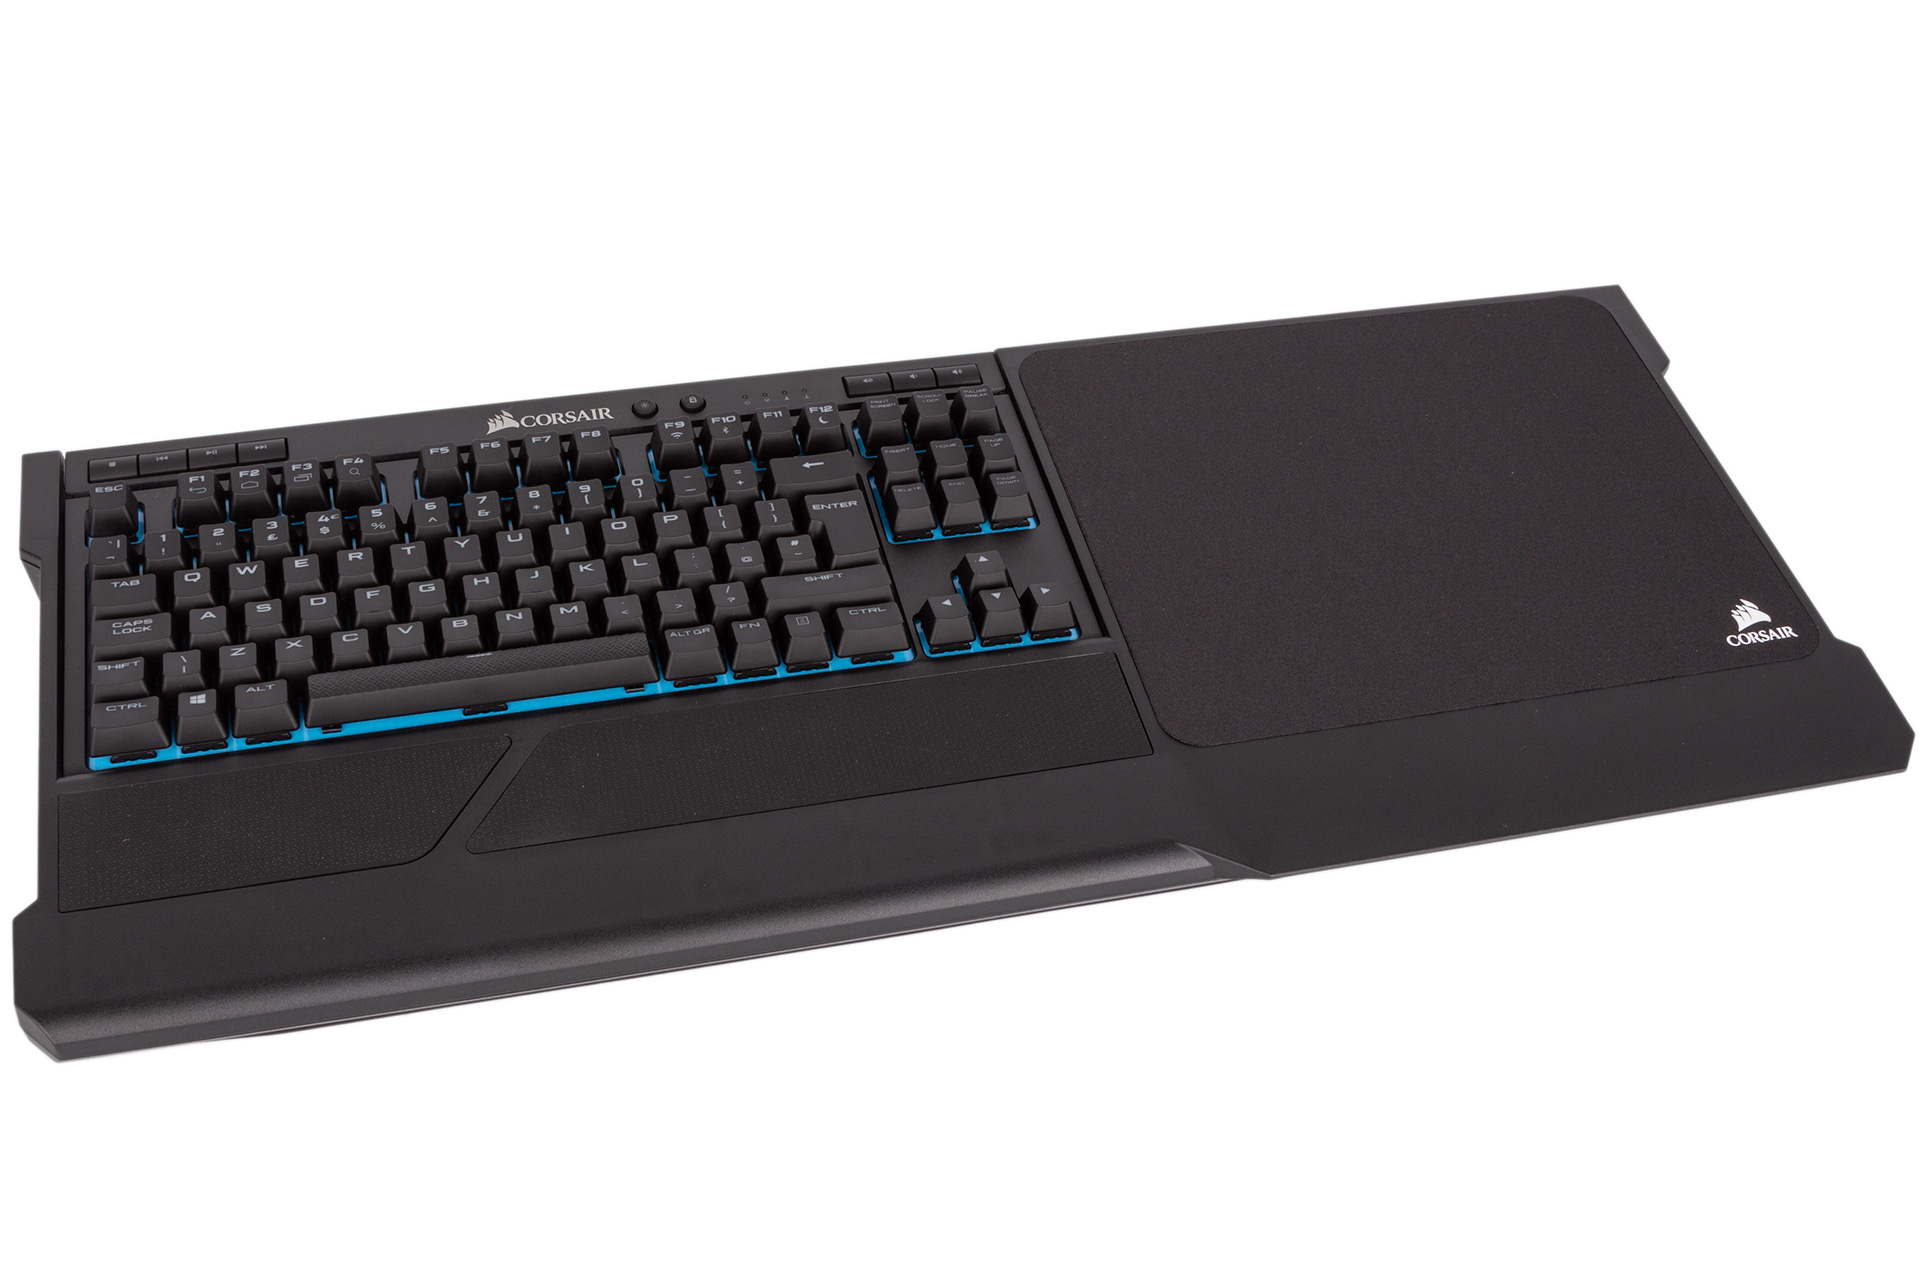 5ee508ba455 The K63 Wireless slots rather conveniently into the K63 Wireless Lapboard,  which has a built-in wrist rest of its own and hooks at the back to keep  the ...